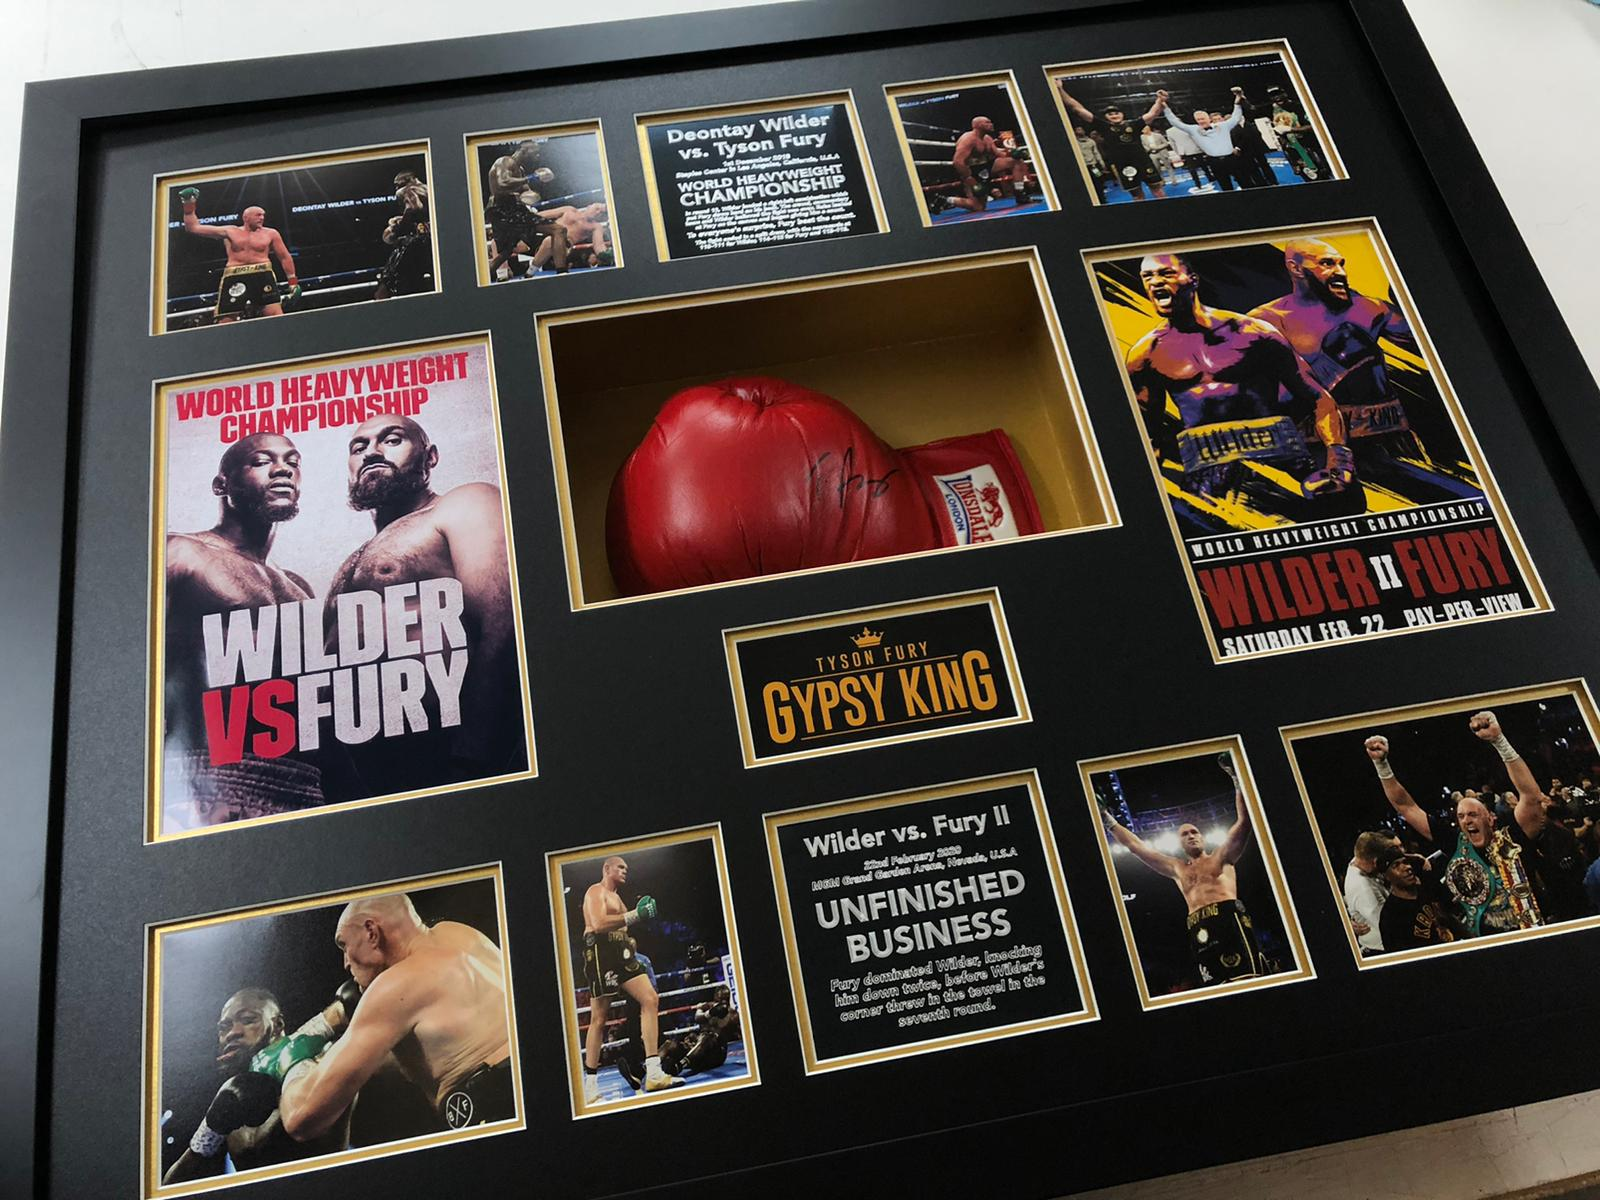 Tyson Fury Signed Glove and Framed vs Wilder - Unfinished Business.